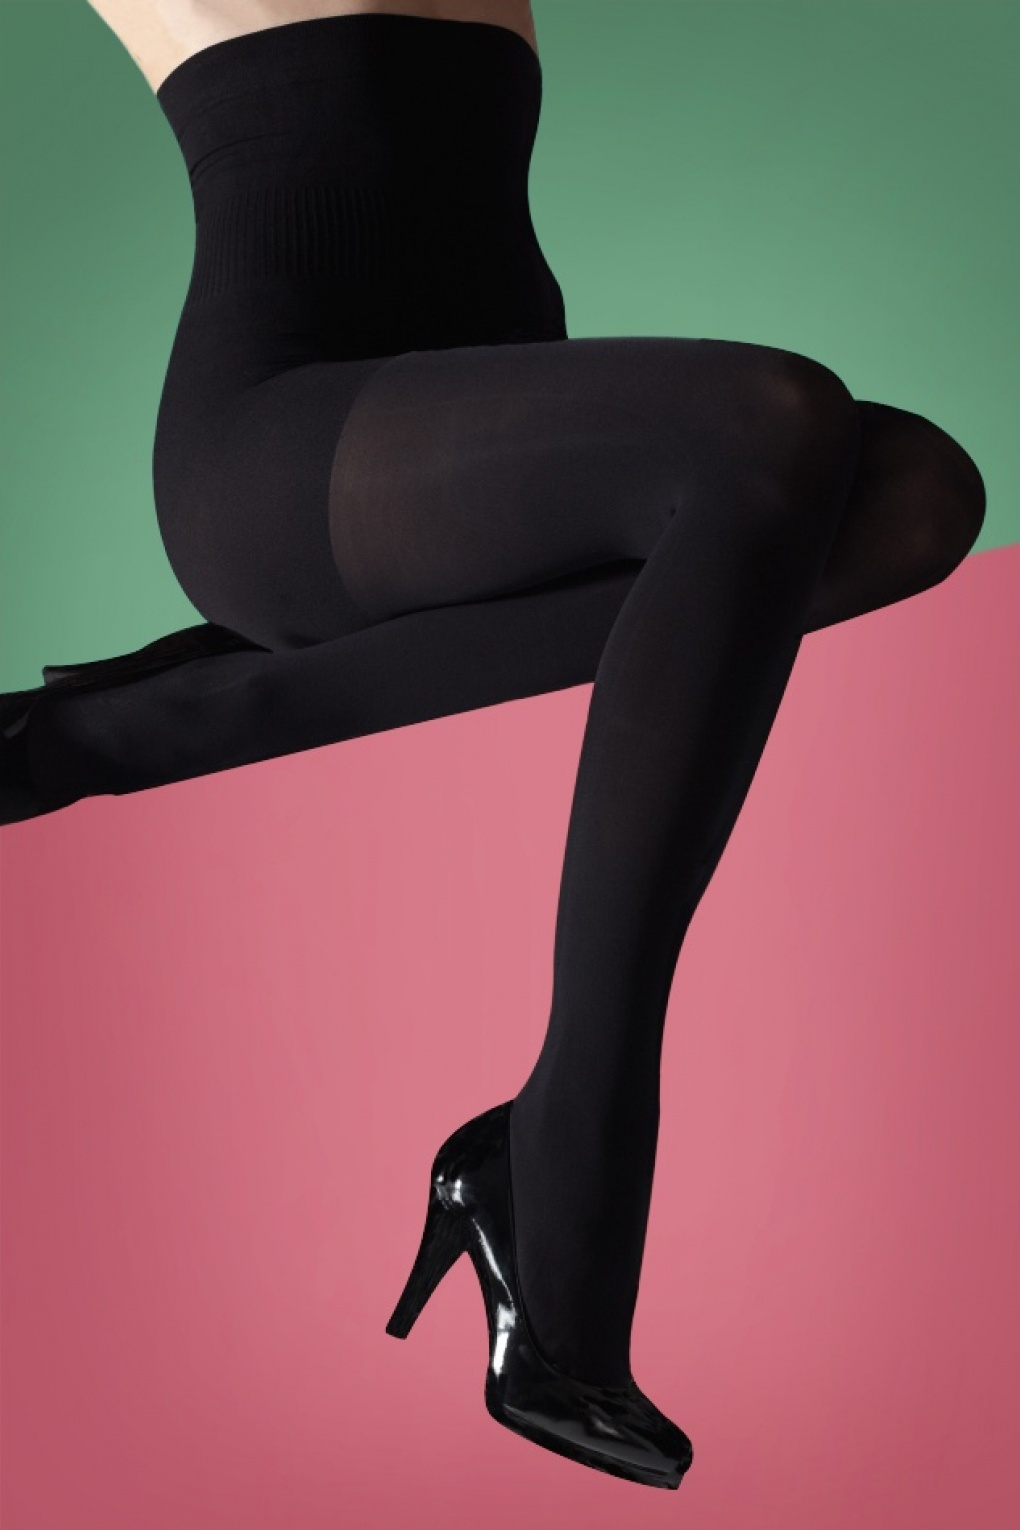 1960s Tights, Stockings, Panty Hose, Knee High Socks 50s Hourglass Shaper Tights in Black £10.81 AT vintagedancer.com